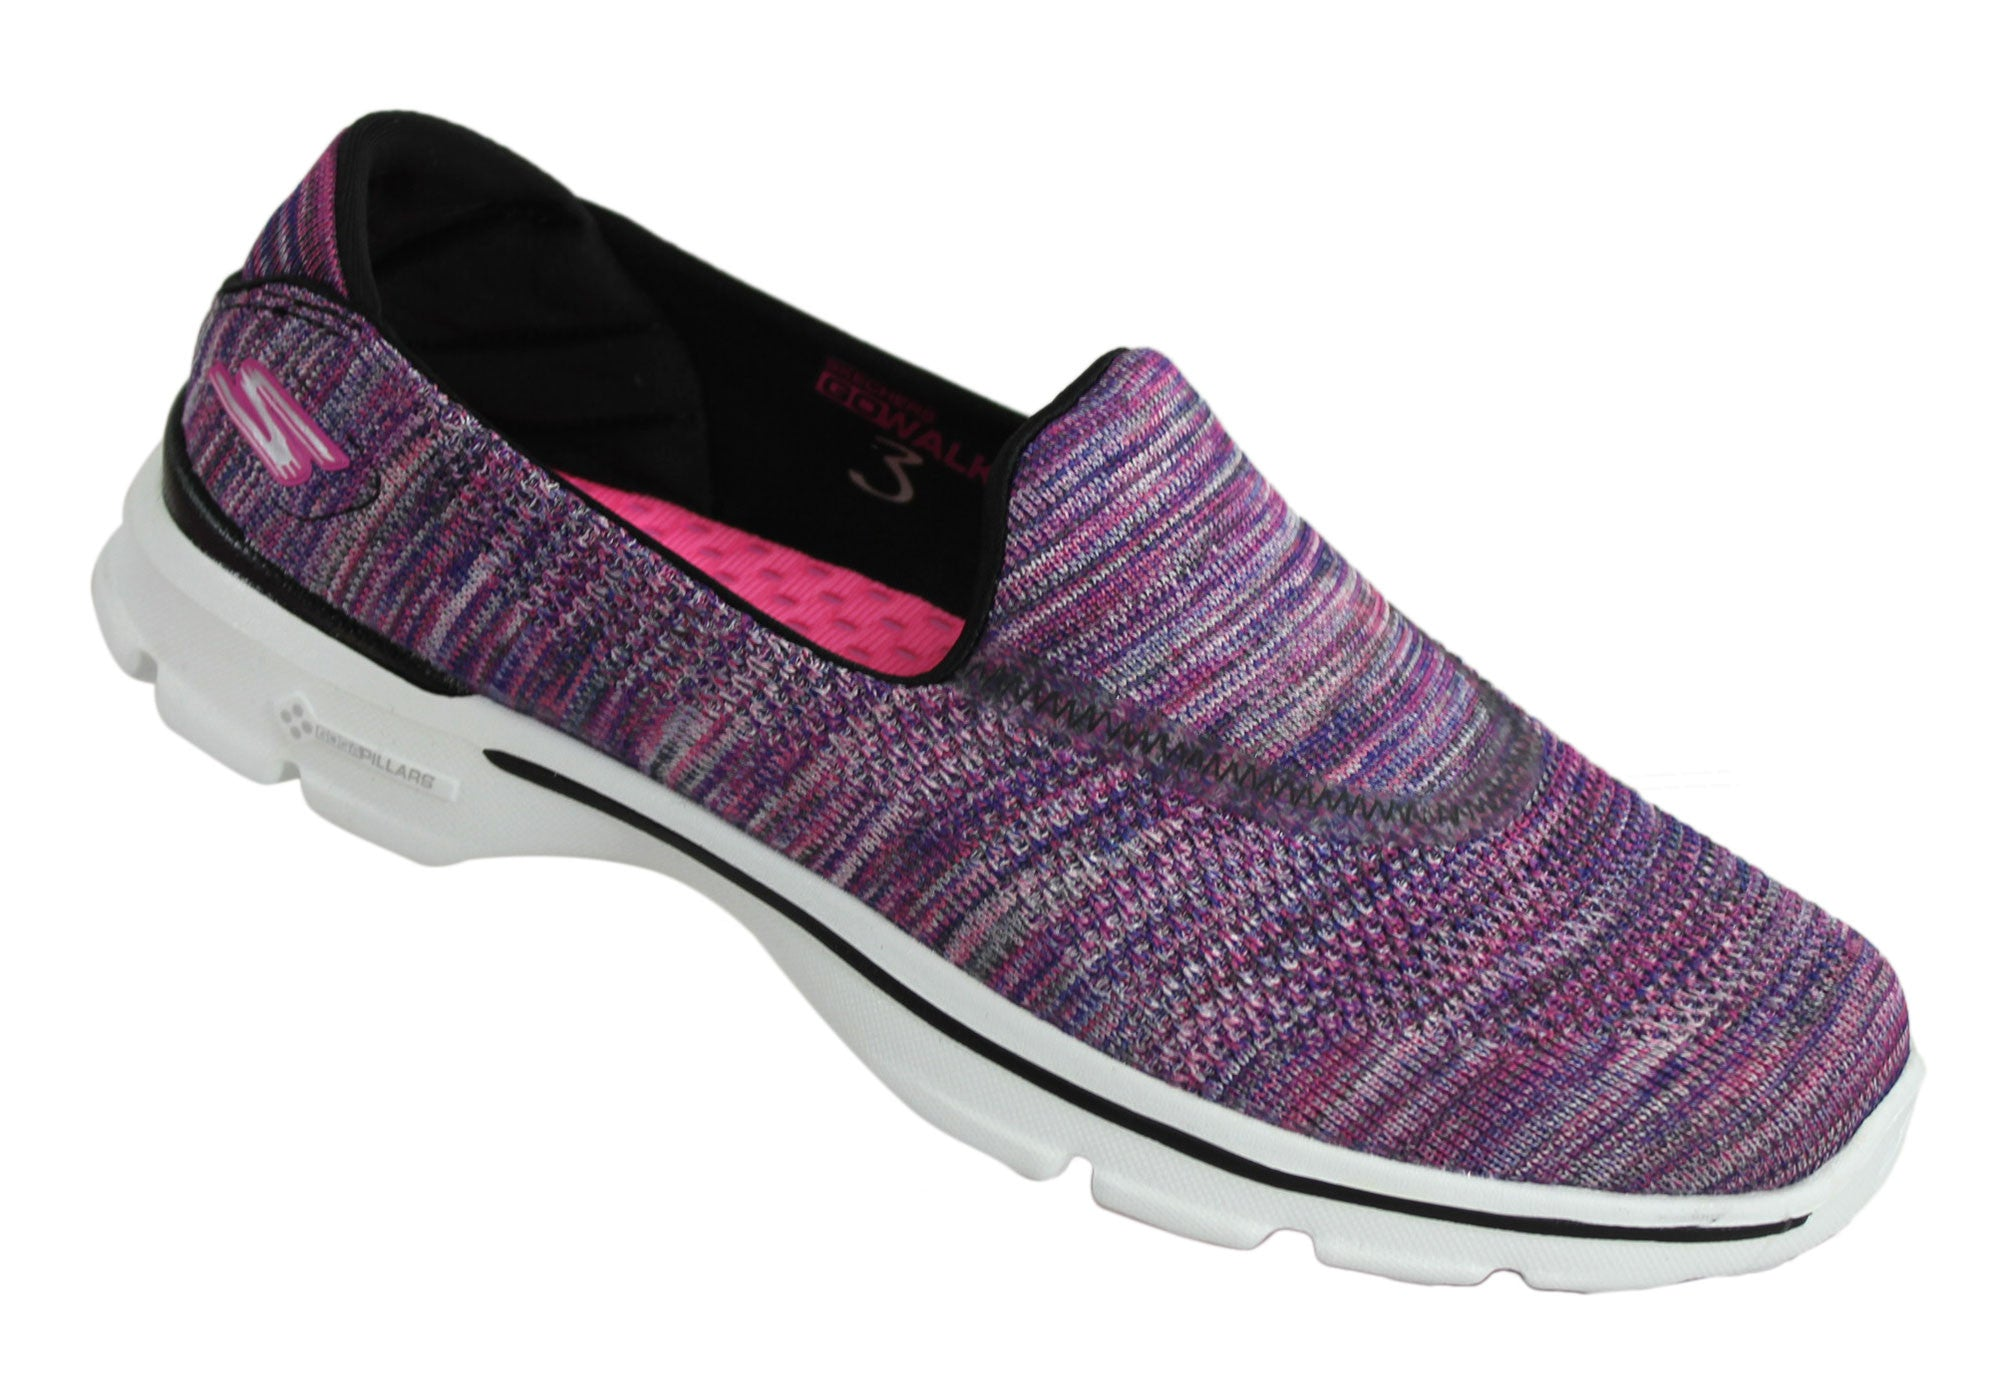 Skechers Go Walk 3 Fitnit Extreme Womens Casual Slip On Shoes